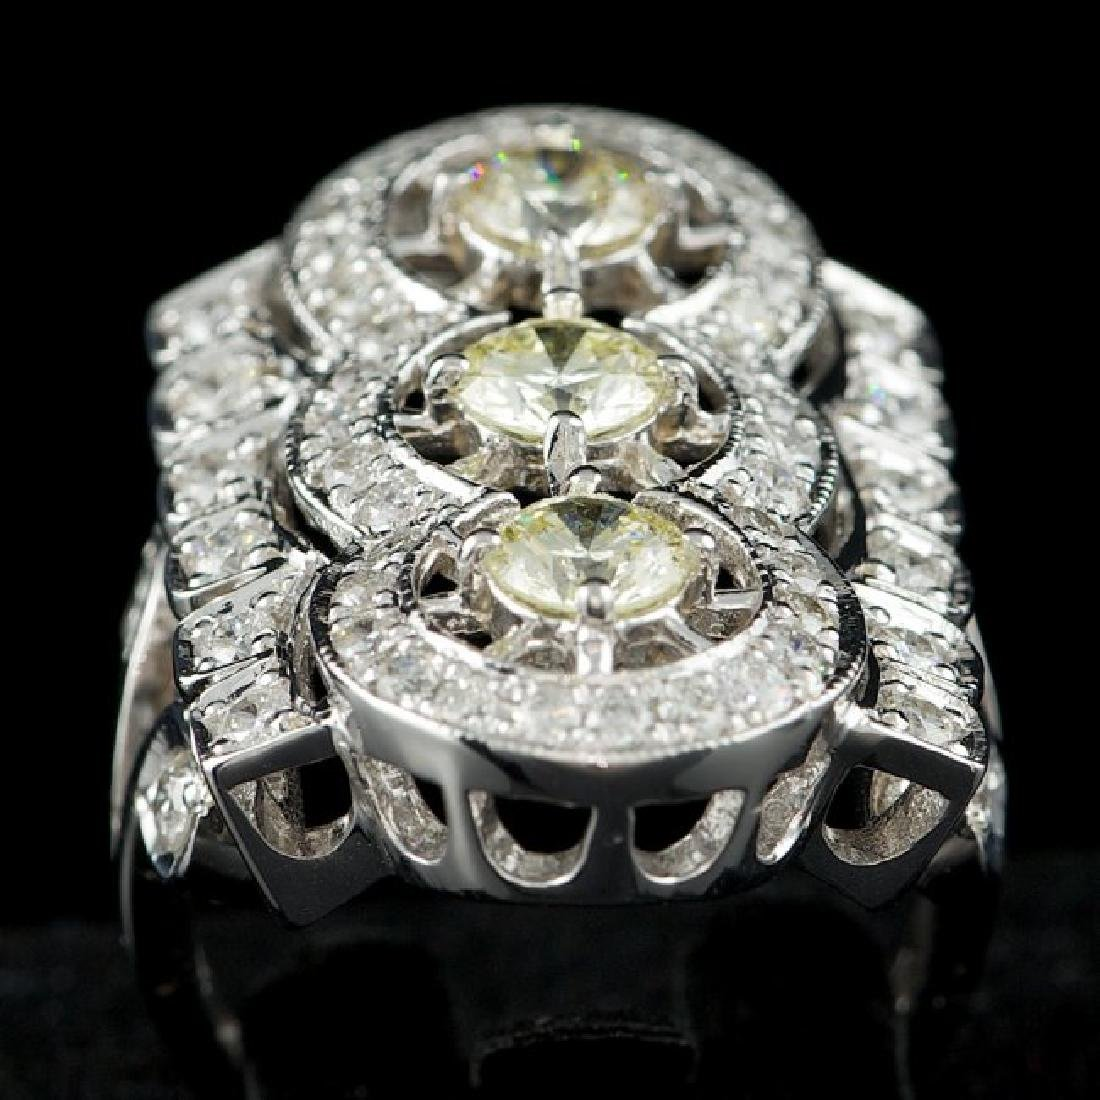 14k White Gold 2.7ct Diamond Ring - 3